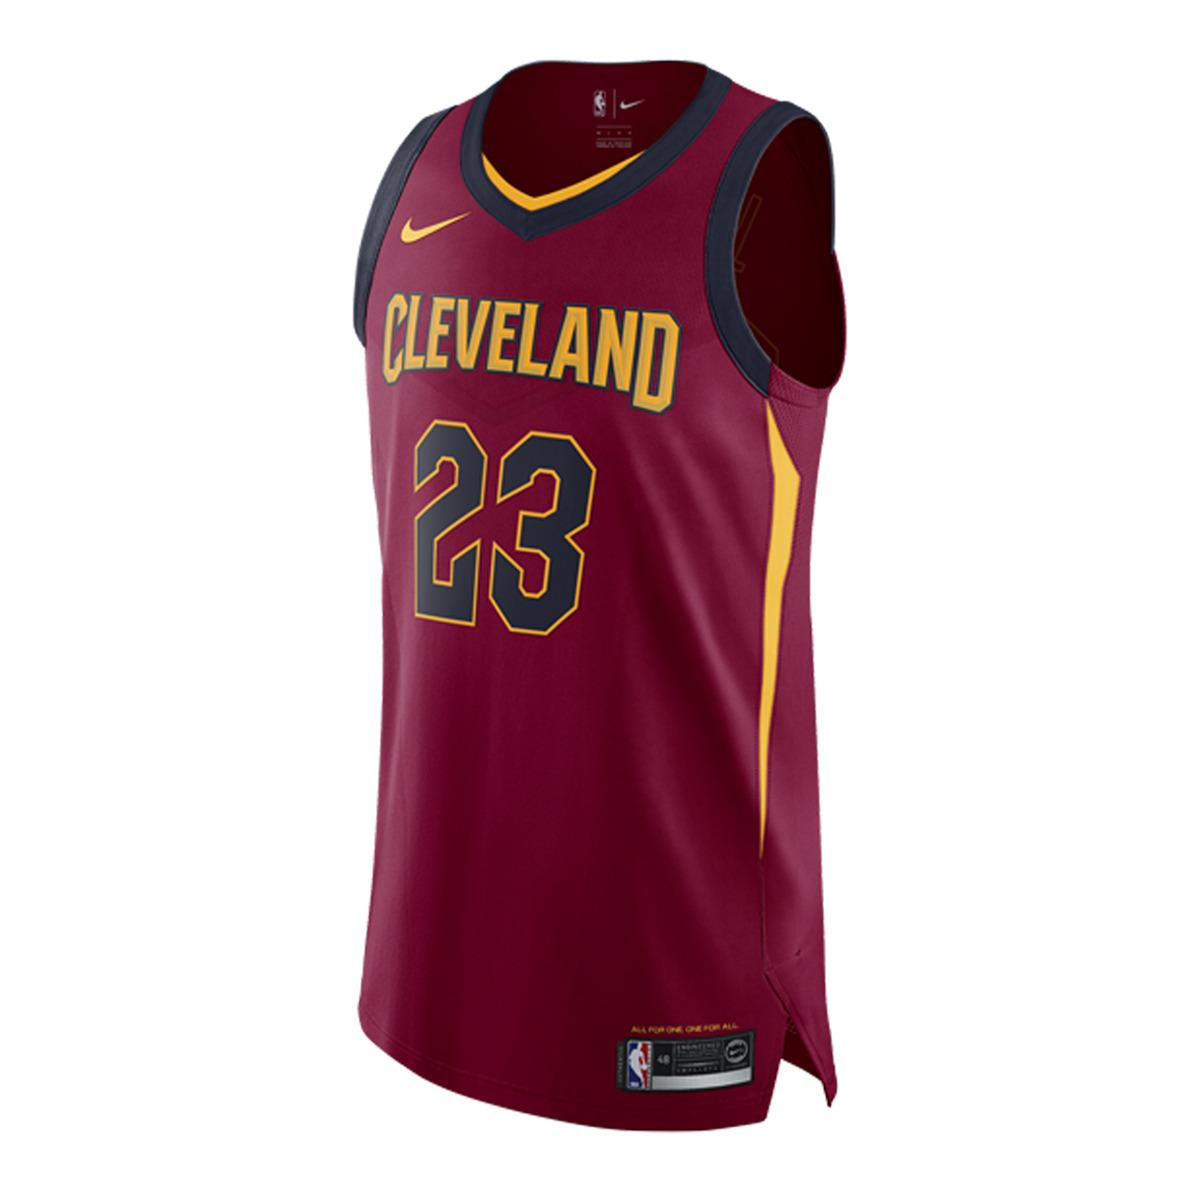 detailed look 2b0ec 6674e Women's Red Cleveland Cavaliers 2017-2018 Lebron James Icon Edition T-shirt